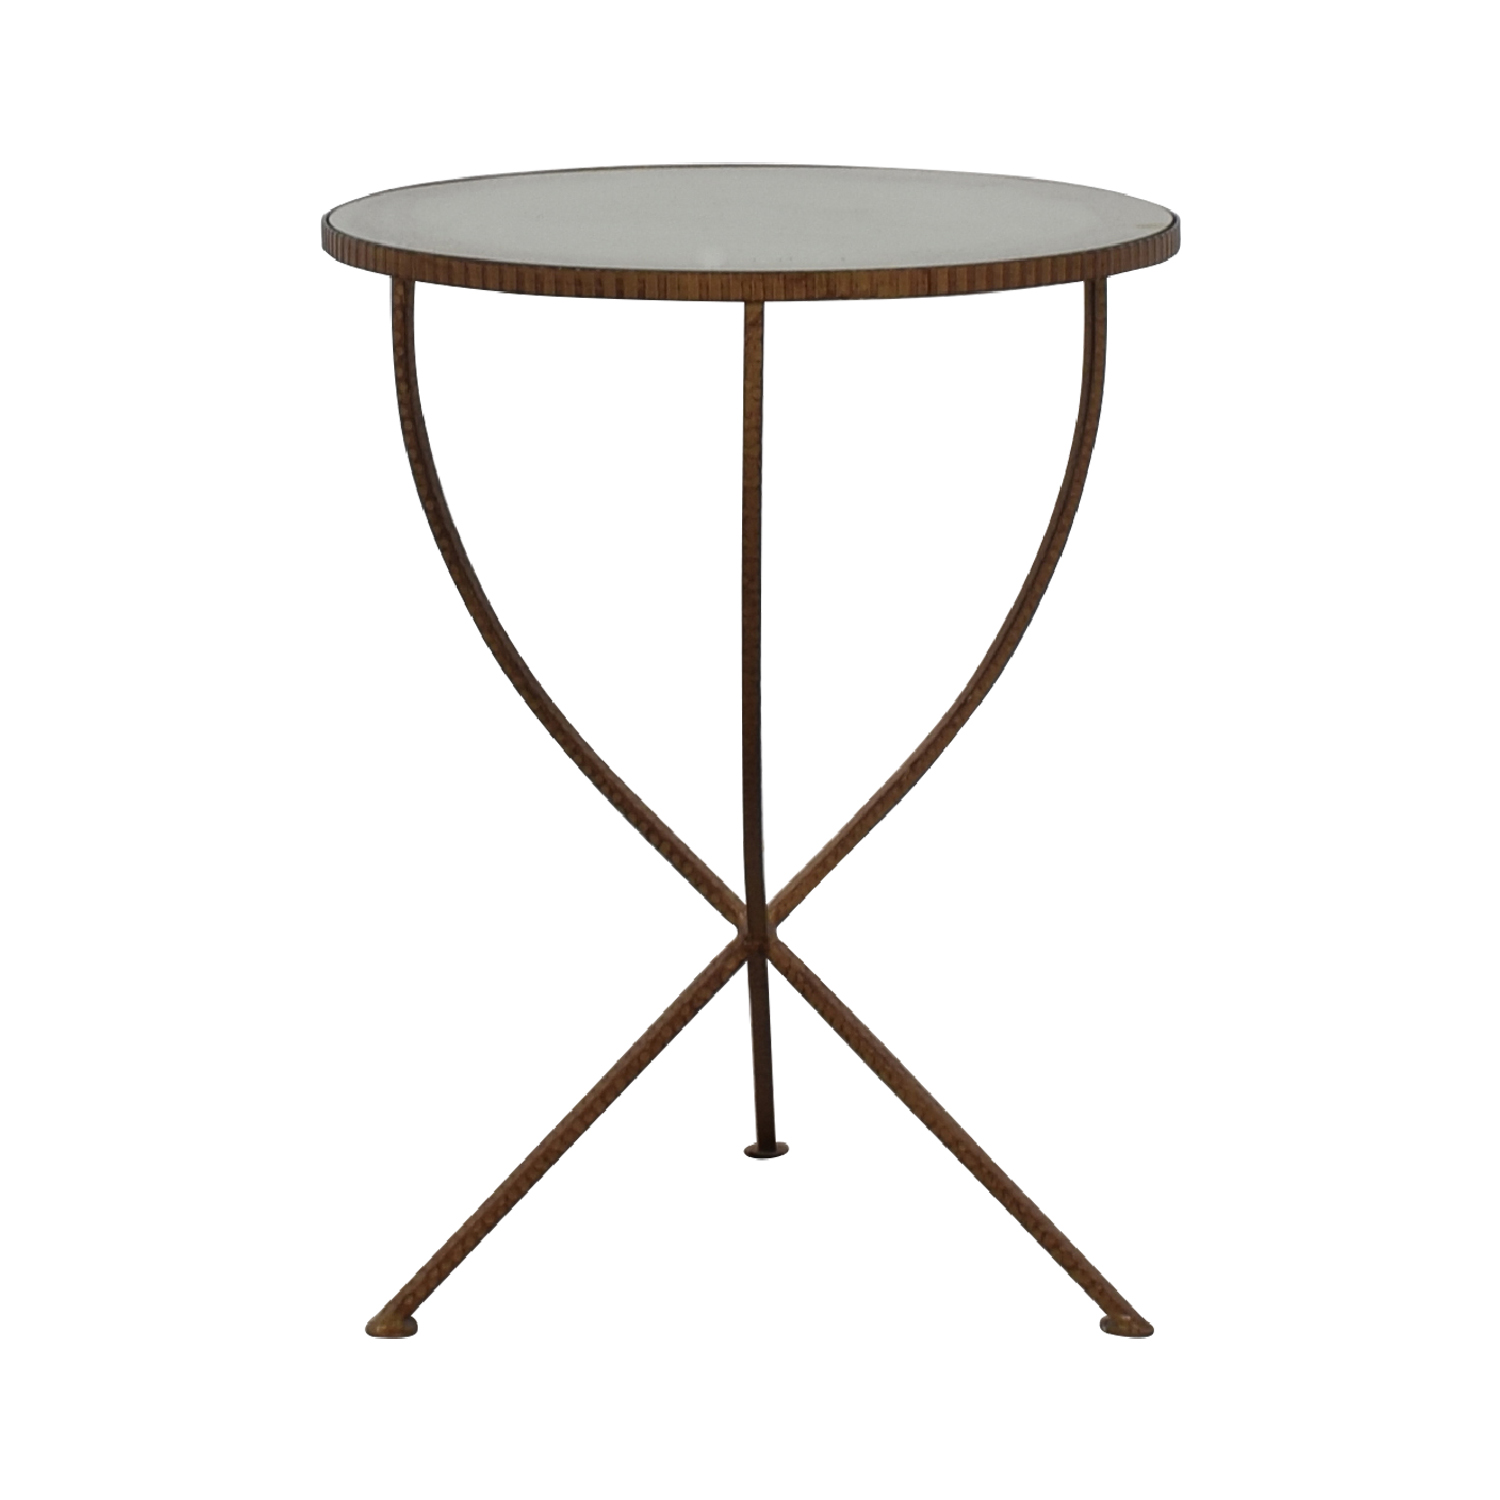 off crate barrel jules accent table tables and small low outdoor safavieh couture antique asian lamps pendant lamp round lucite side target wicker coffee simple plans pottery barn